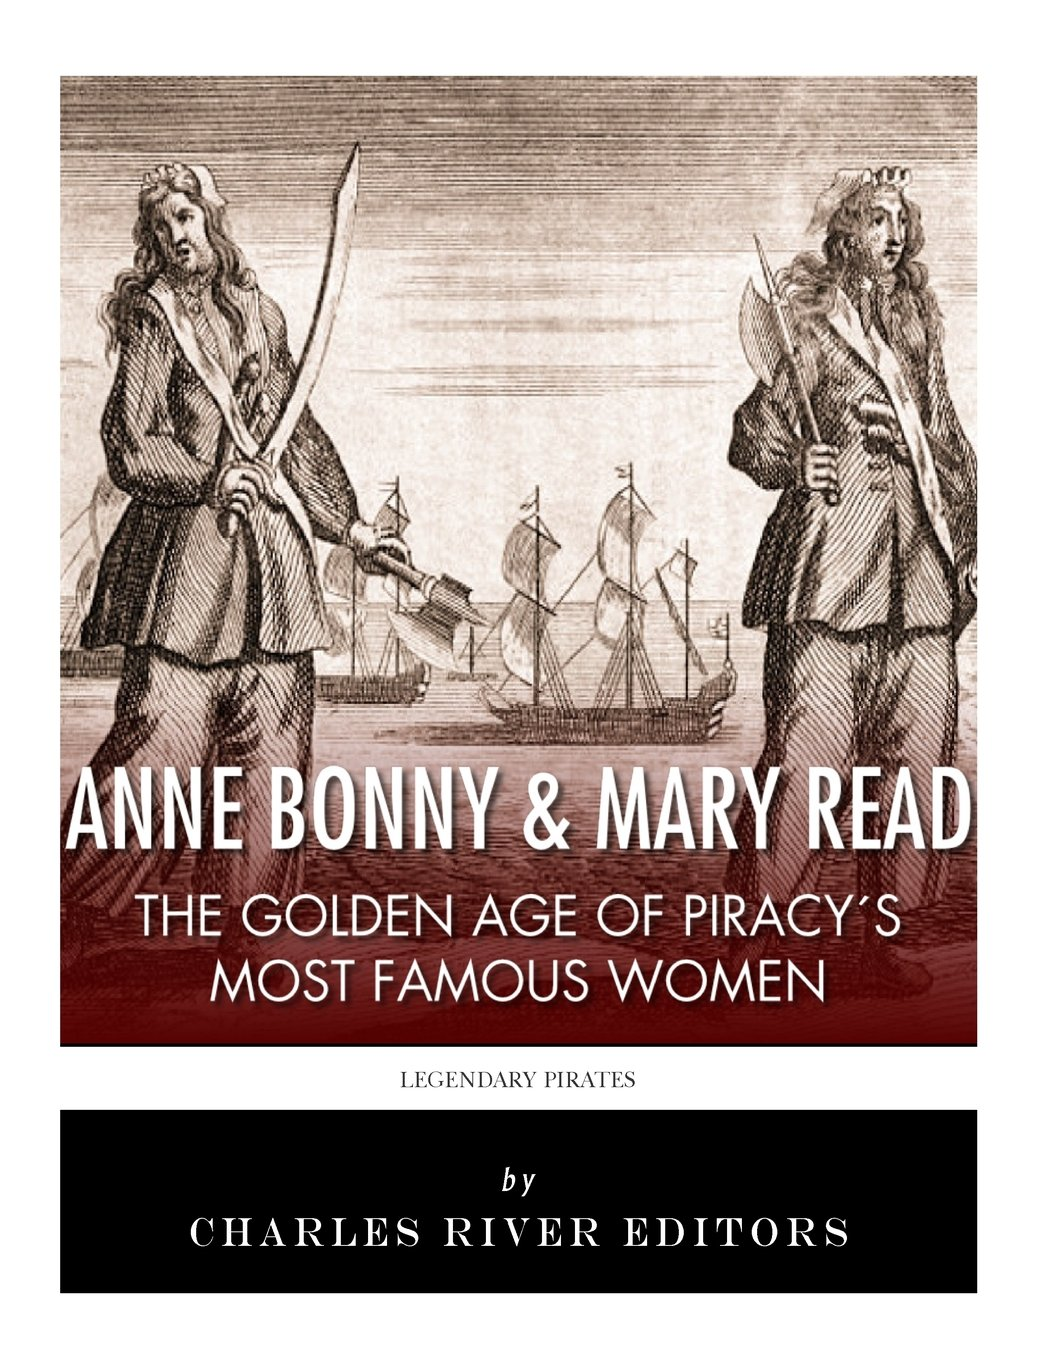 Download Anne Bonny & Mary Read: The Golden Age of Piracy's Most Famous Women pdf epub